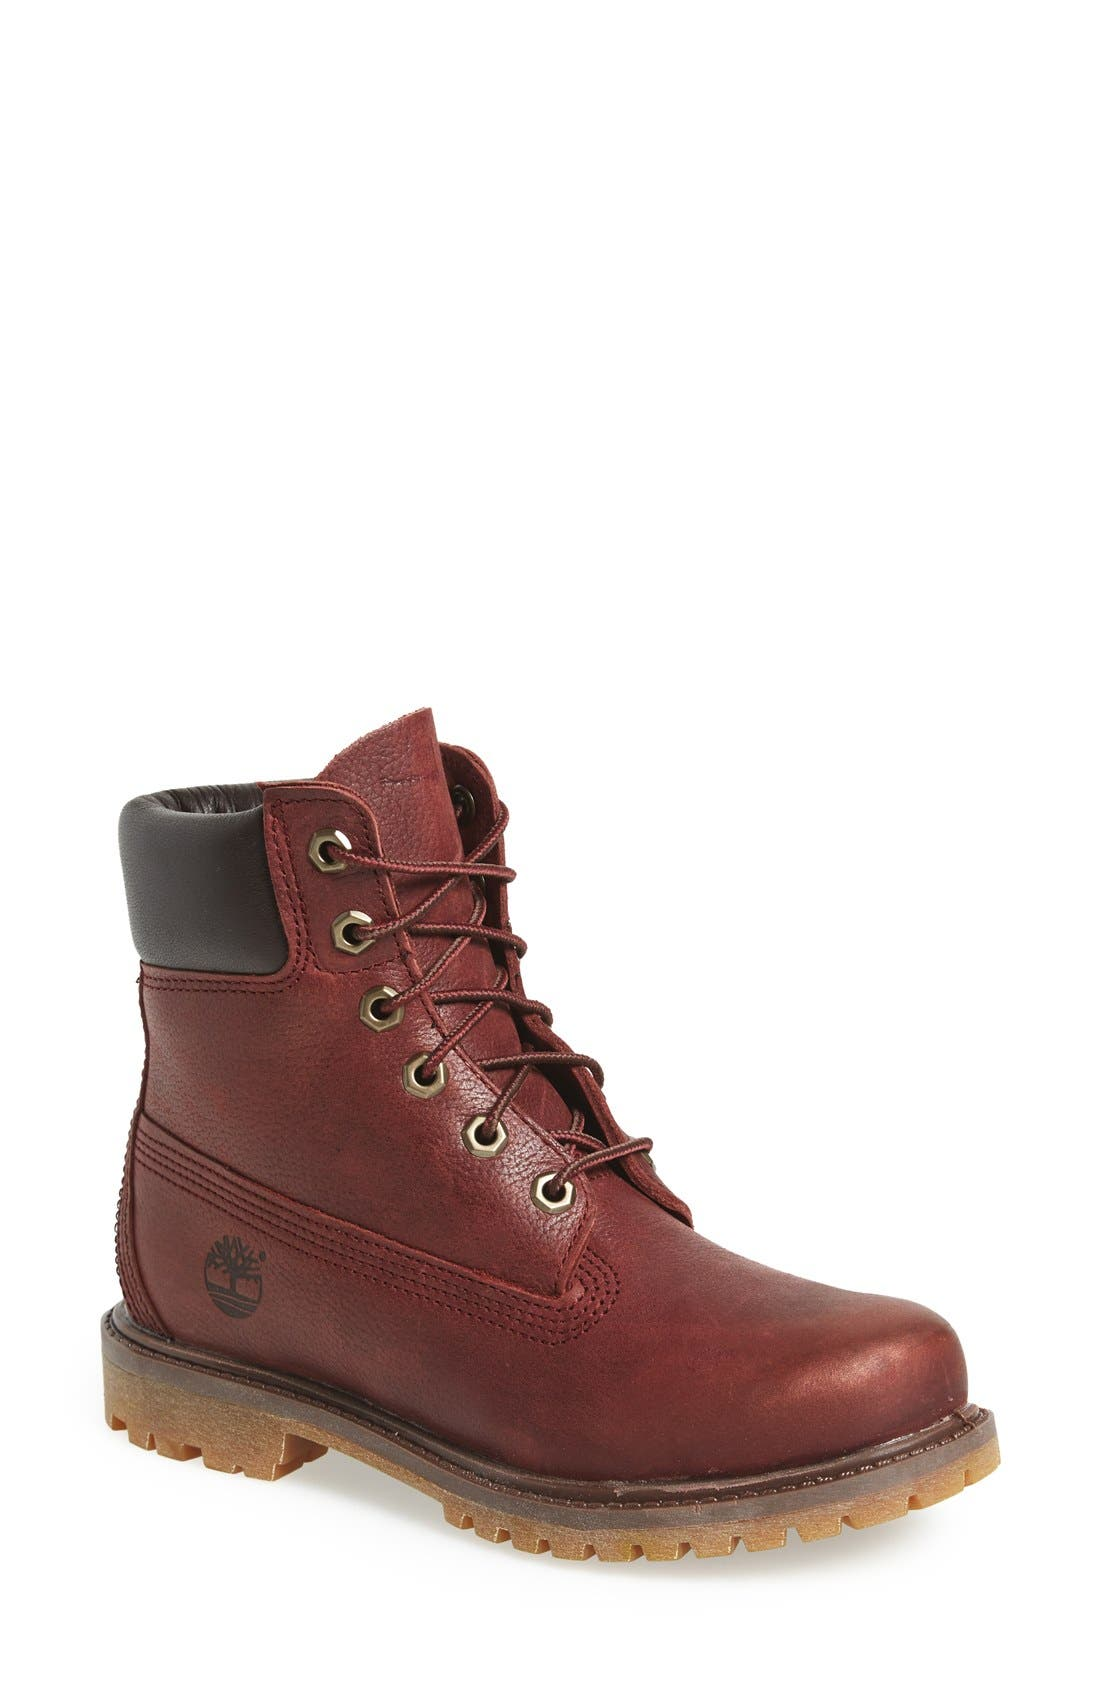 Alternate Image 1 Selected - Timberland '6 Inch Premium' Waterproof Boot (Women)